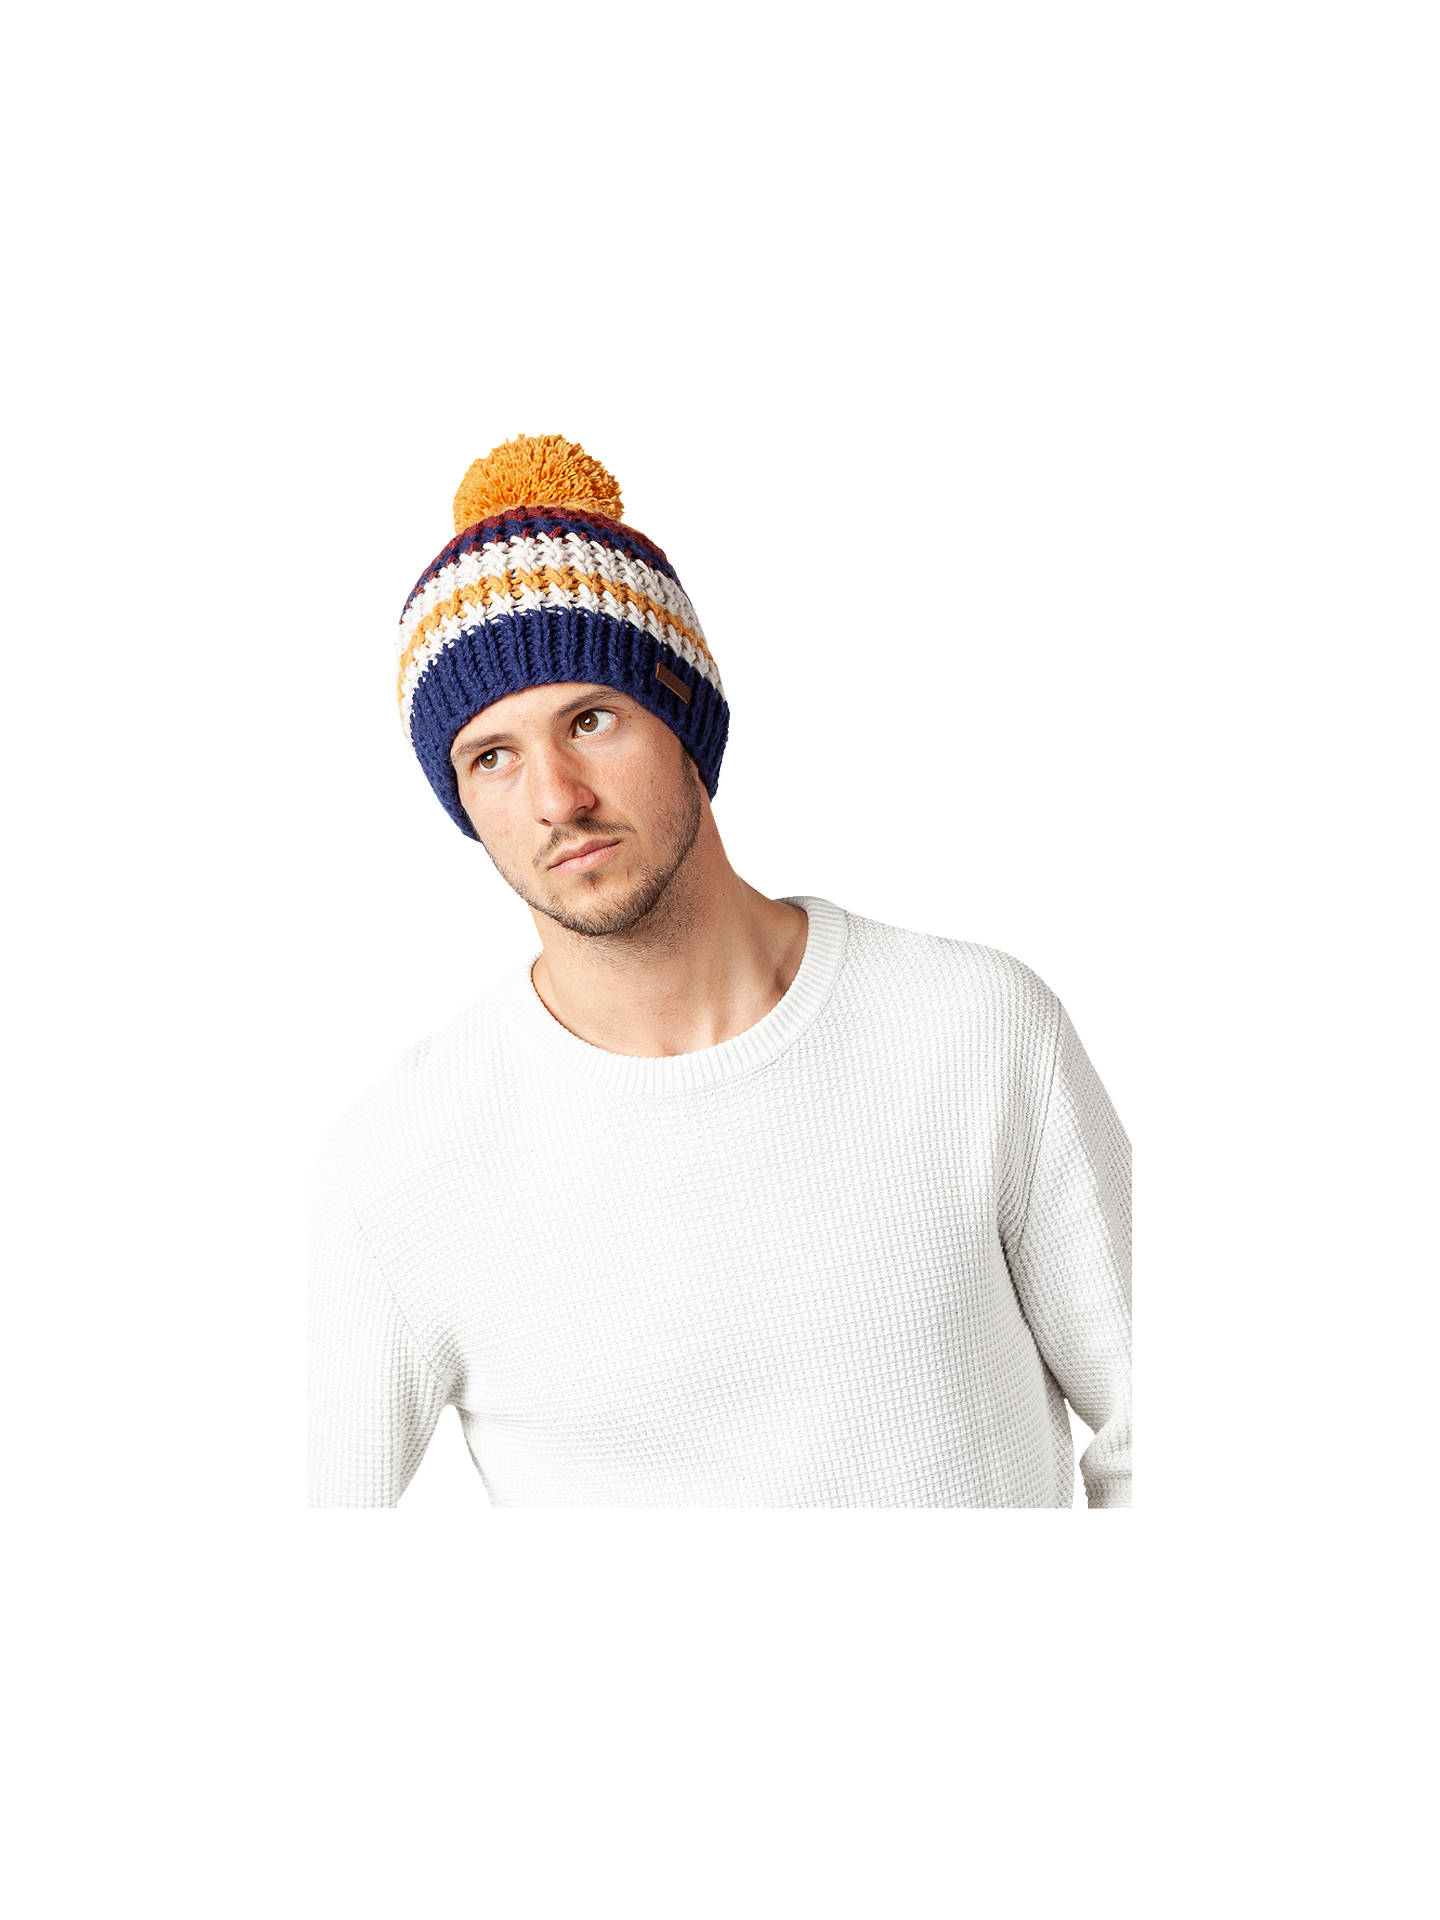 BuyBarts Crow Beanie, One Size, Ochre Online at johnlewis.com